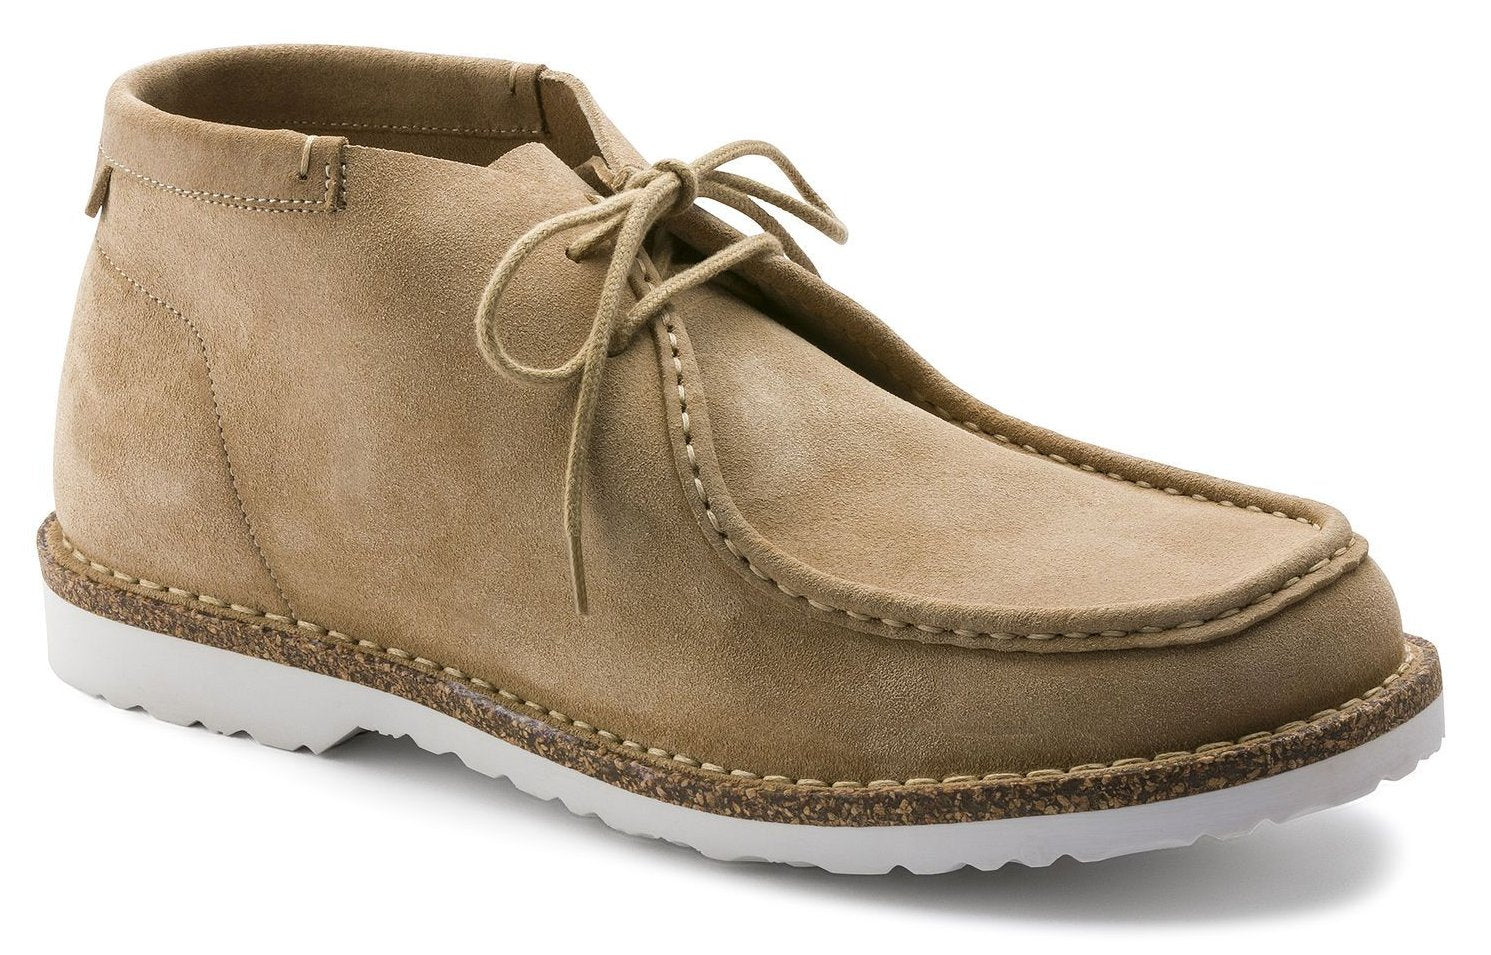 Delano High Men - Sand Suede